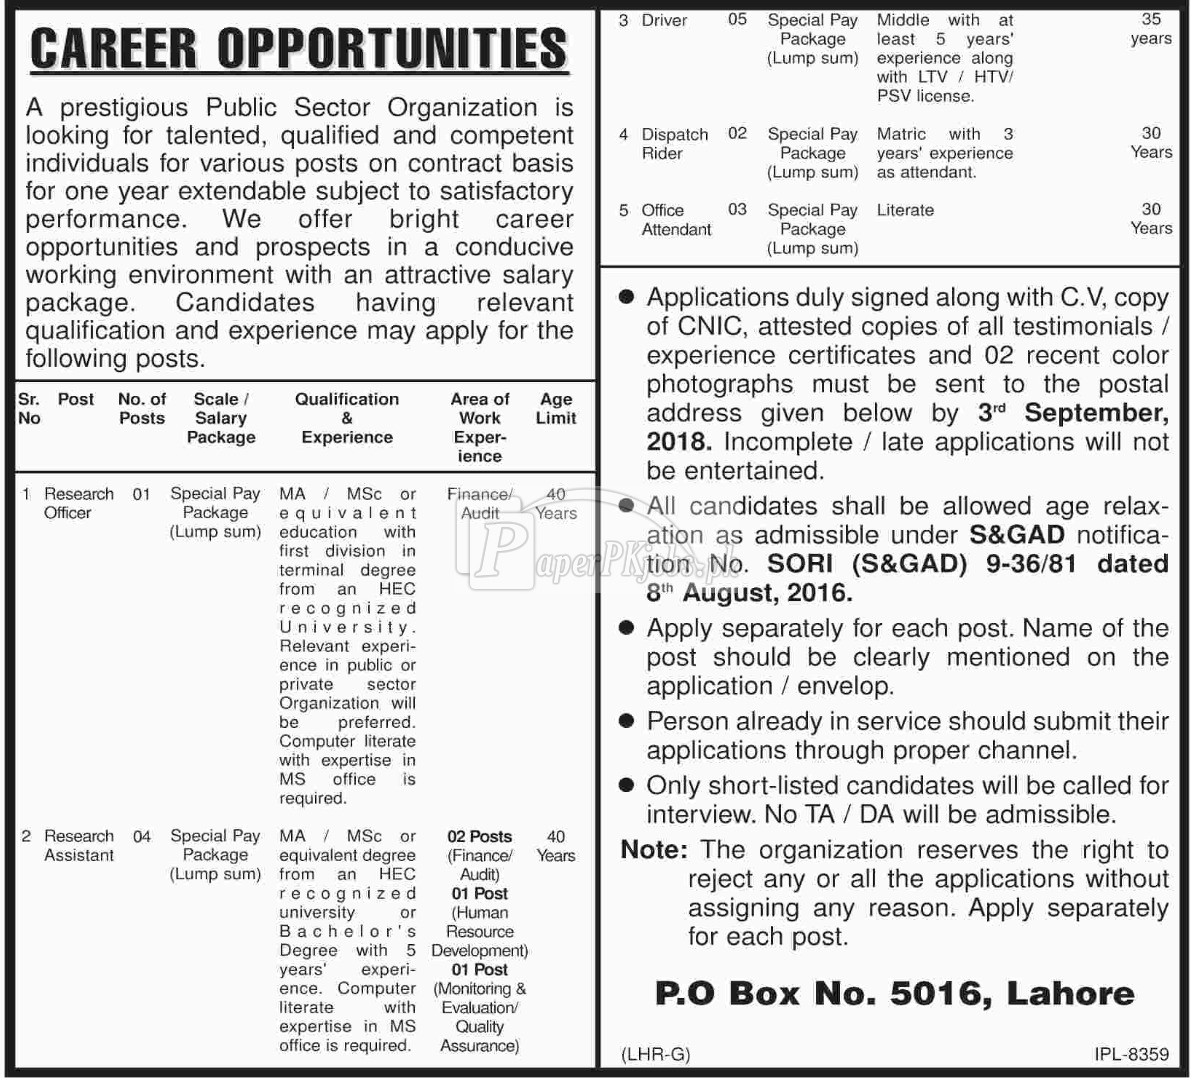 Public Sector Organization P.O.Box 5016 Lahore Jobs 2018